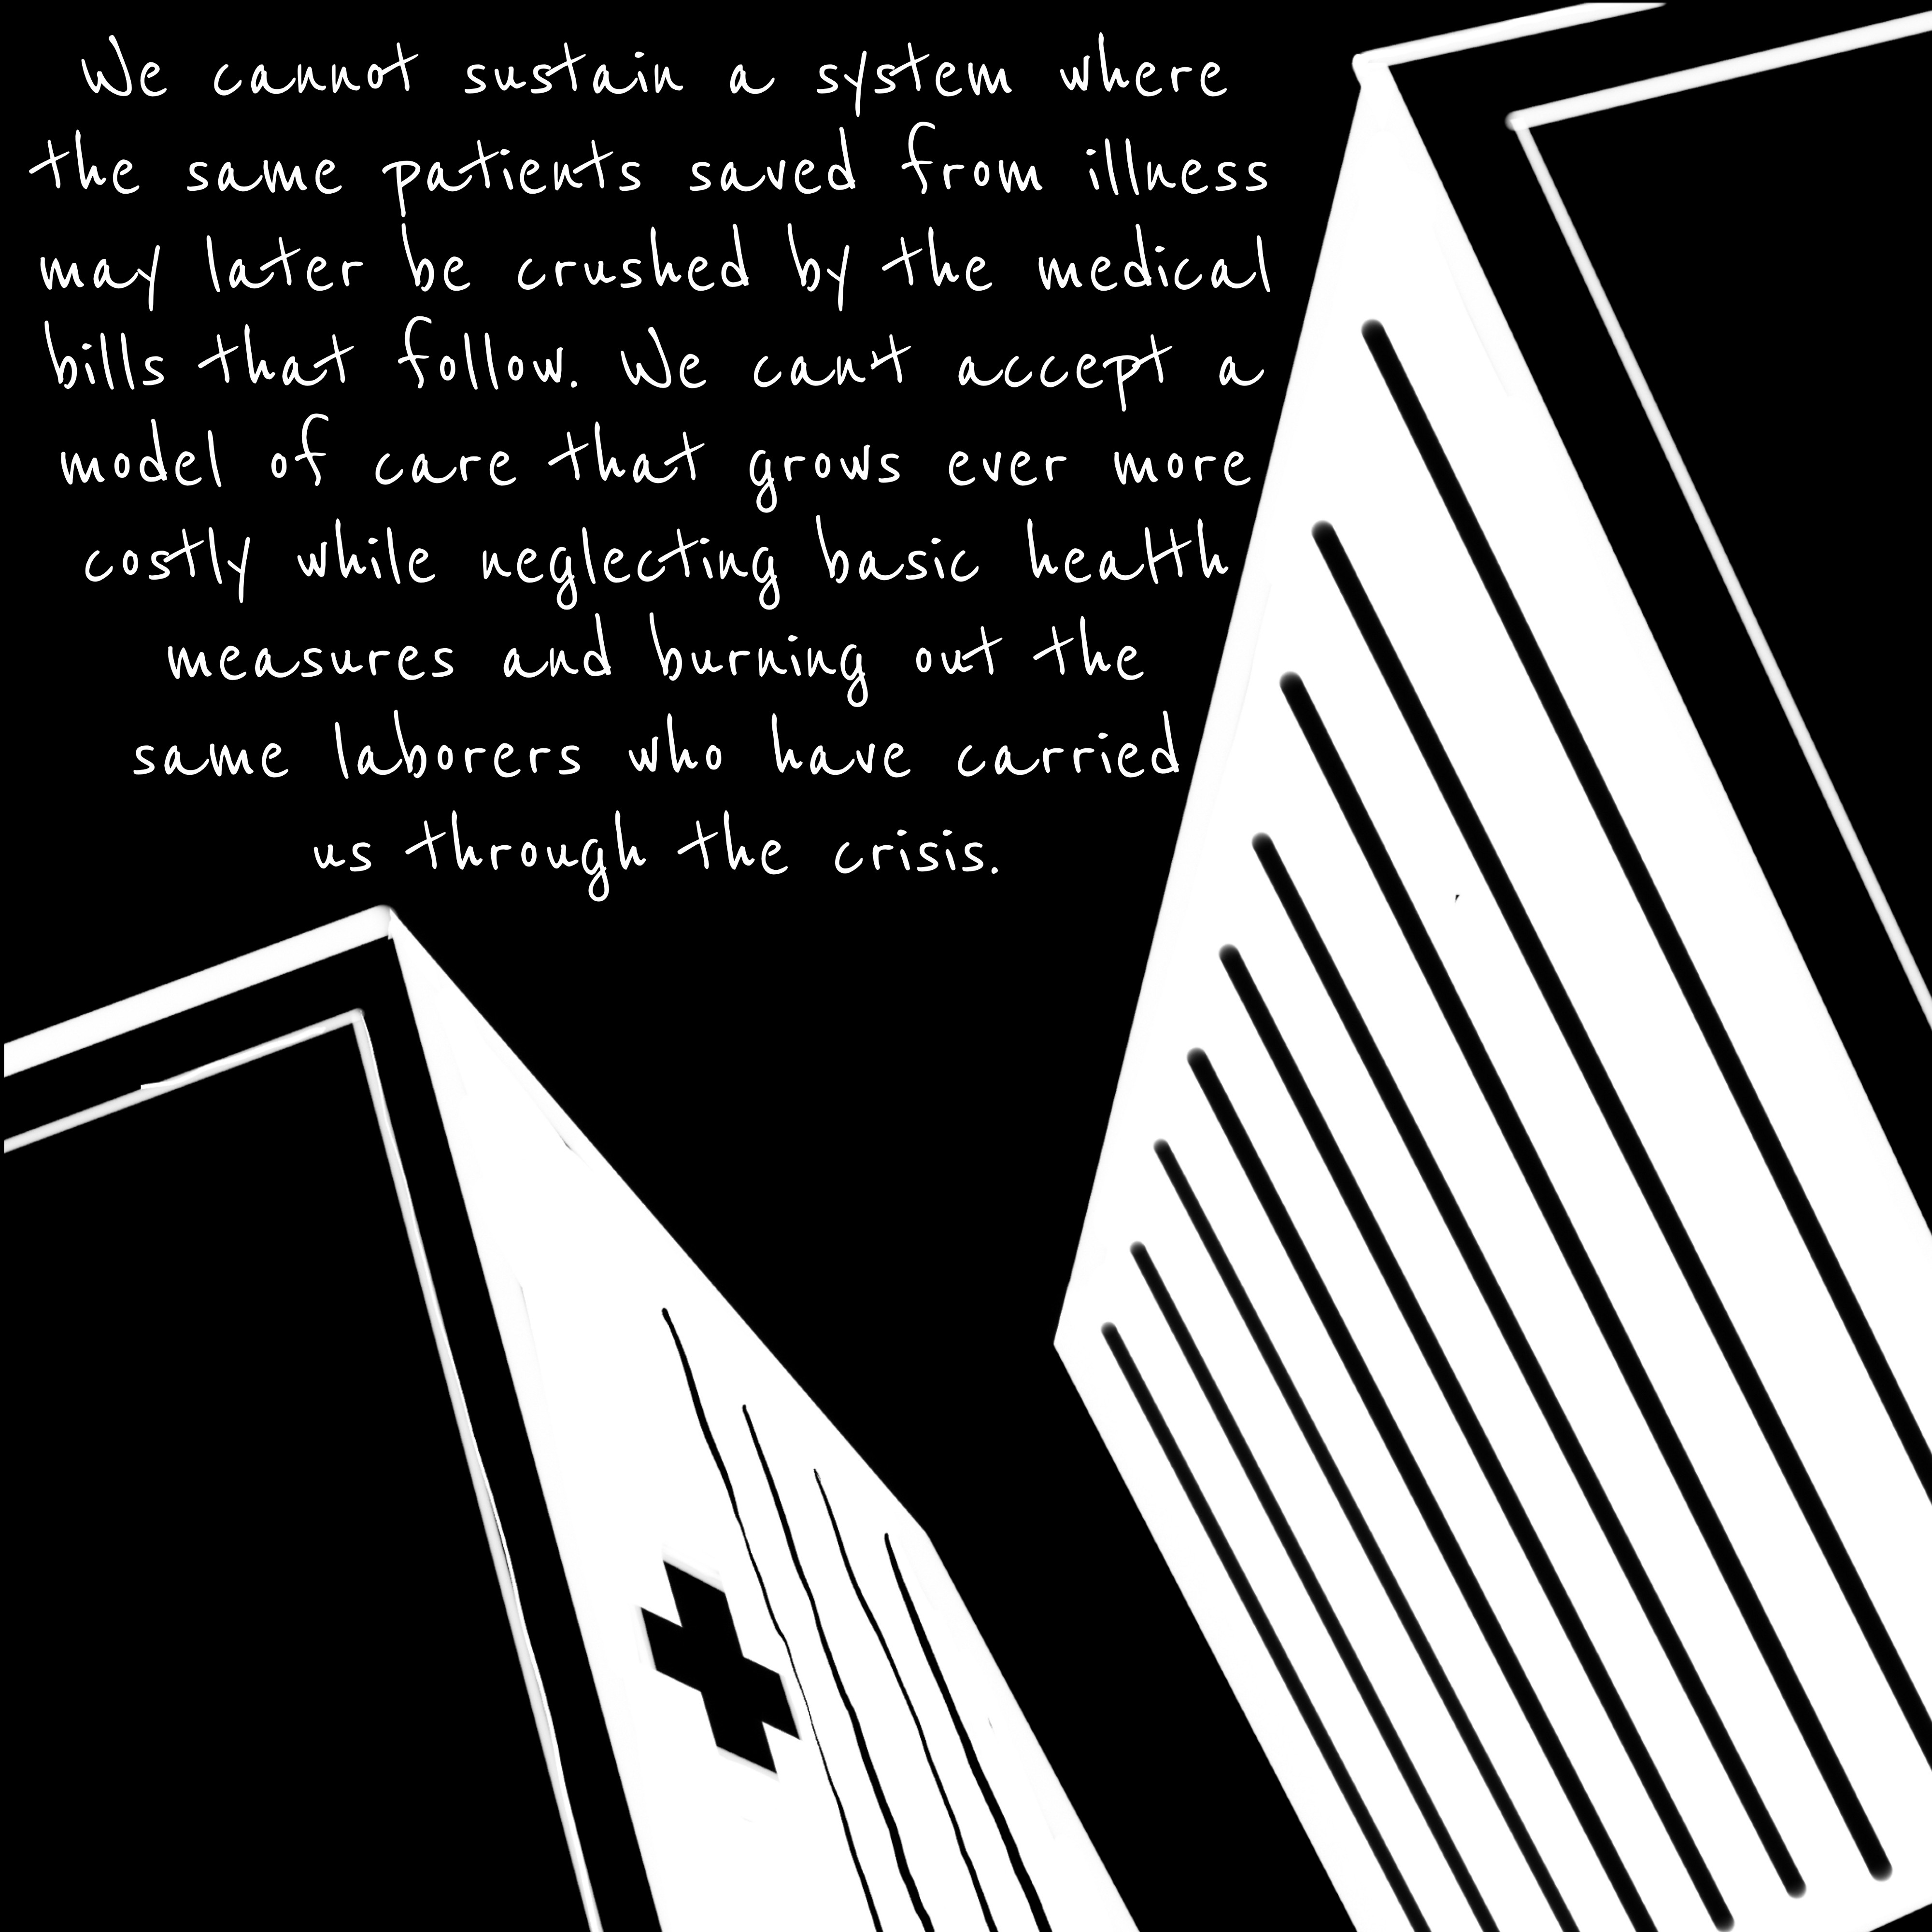 """Hospital buildings—We cannot sustain a system that crushes patients with cost and burns out the clinicians who carried us."""""""